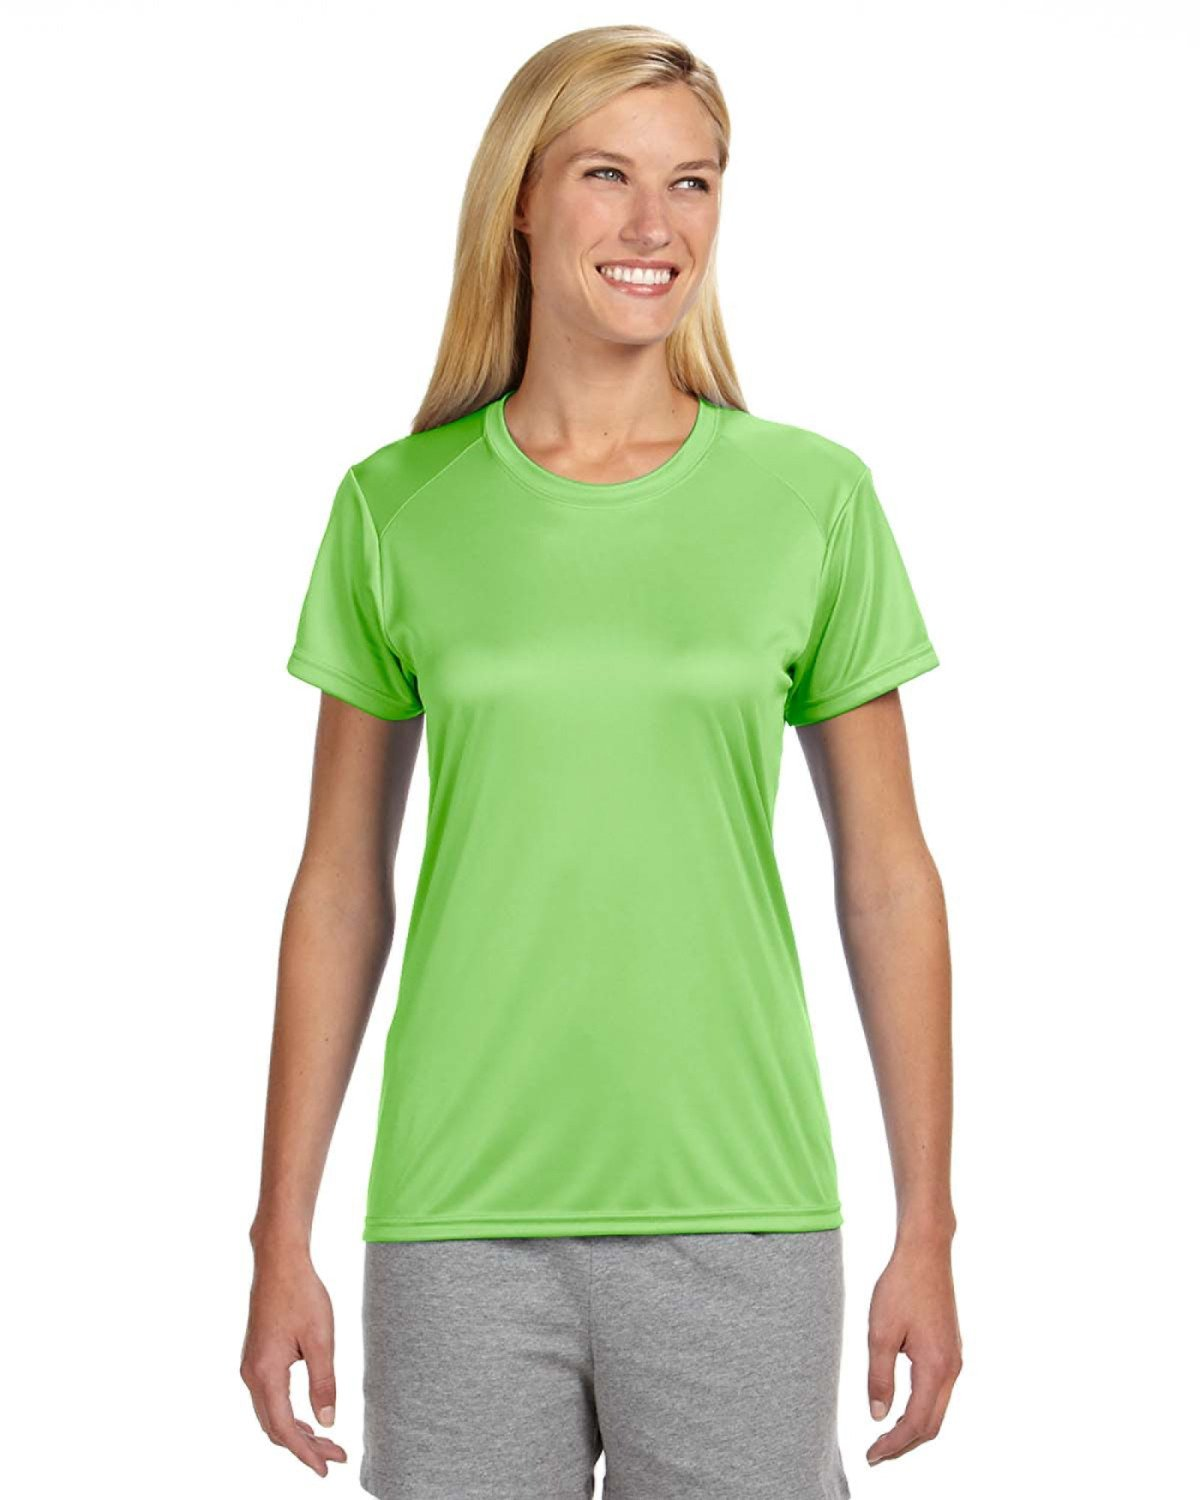 A4 Ladies' Cooling Performance T-Shirt LIME